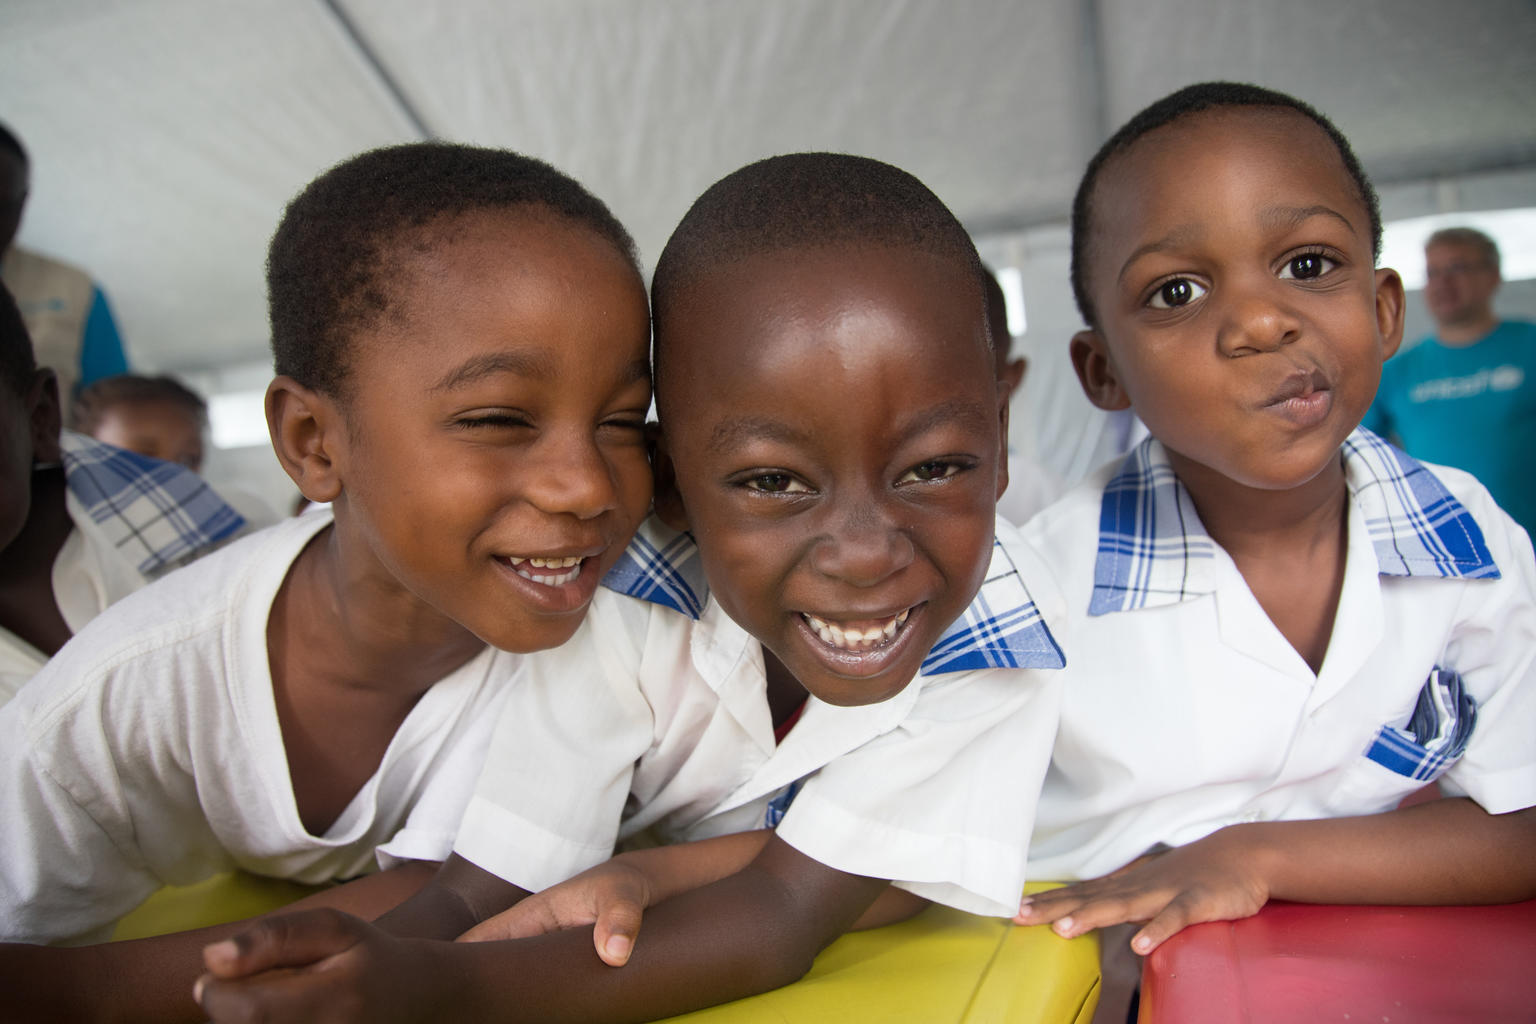 Three school children smiling closely at the camera.